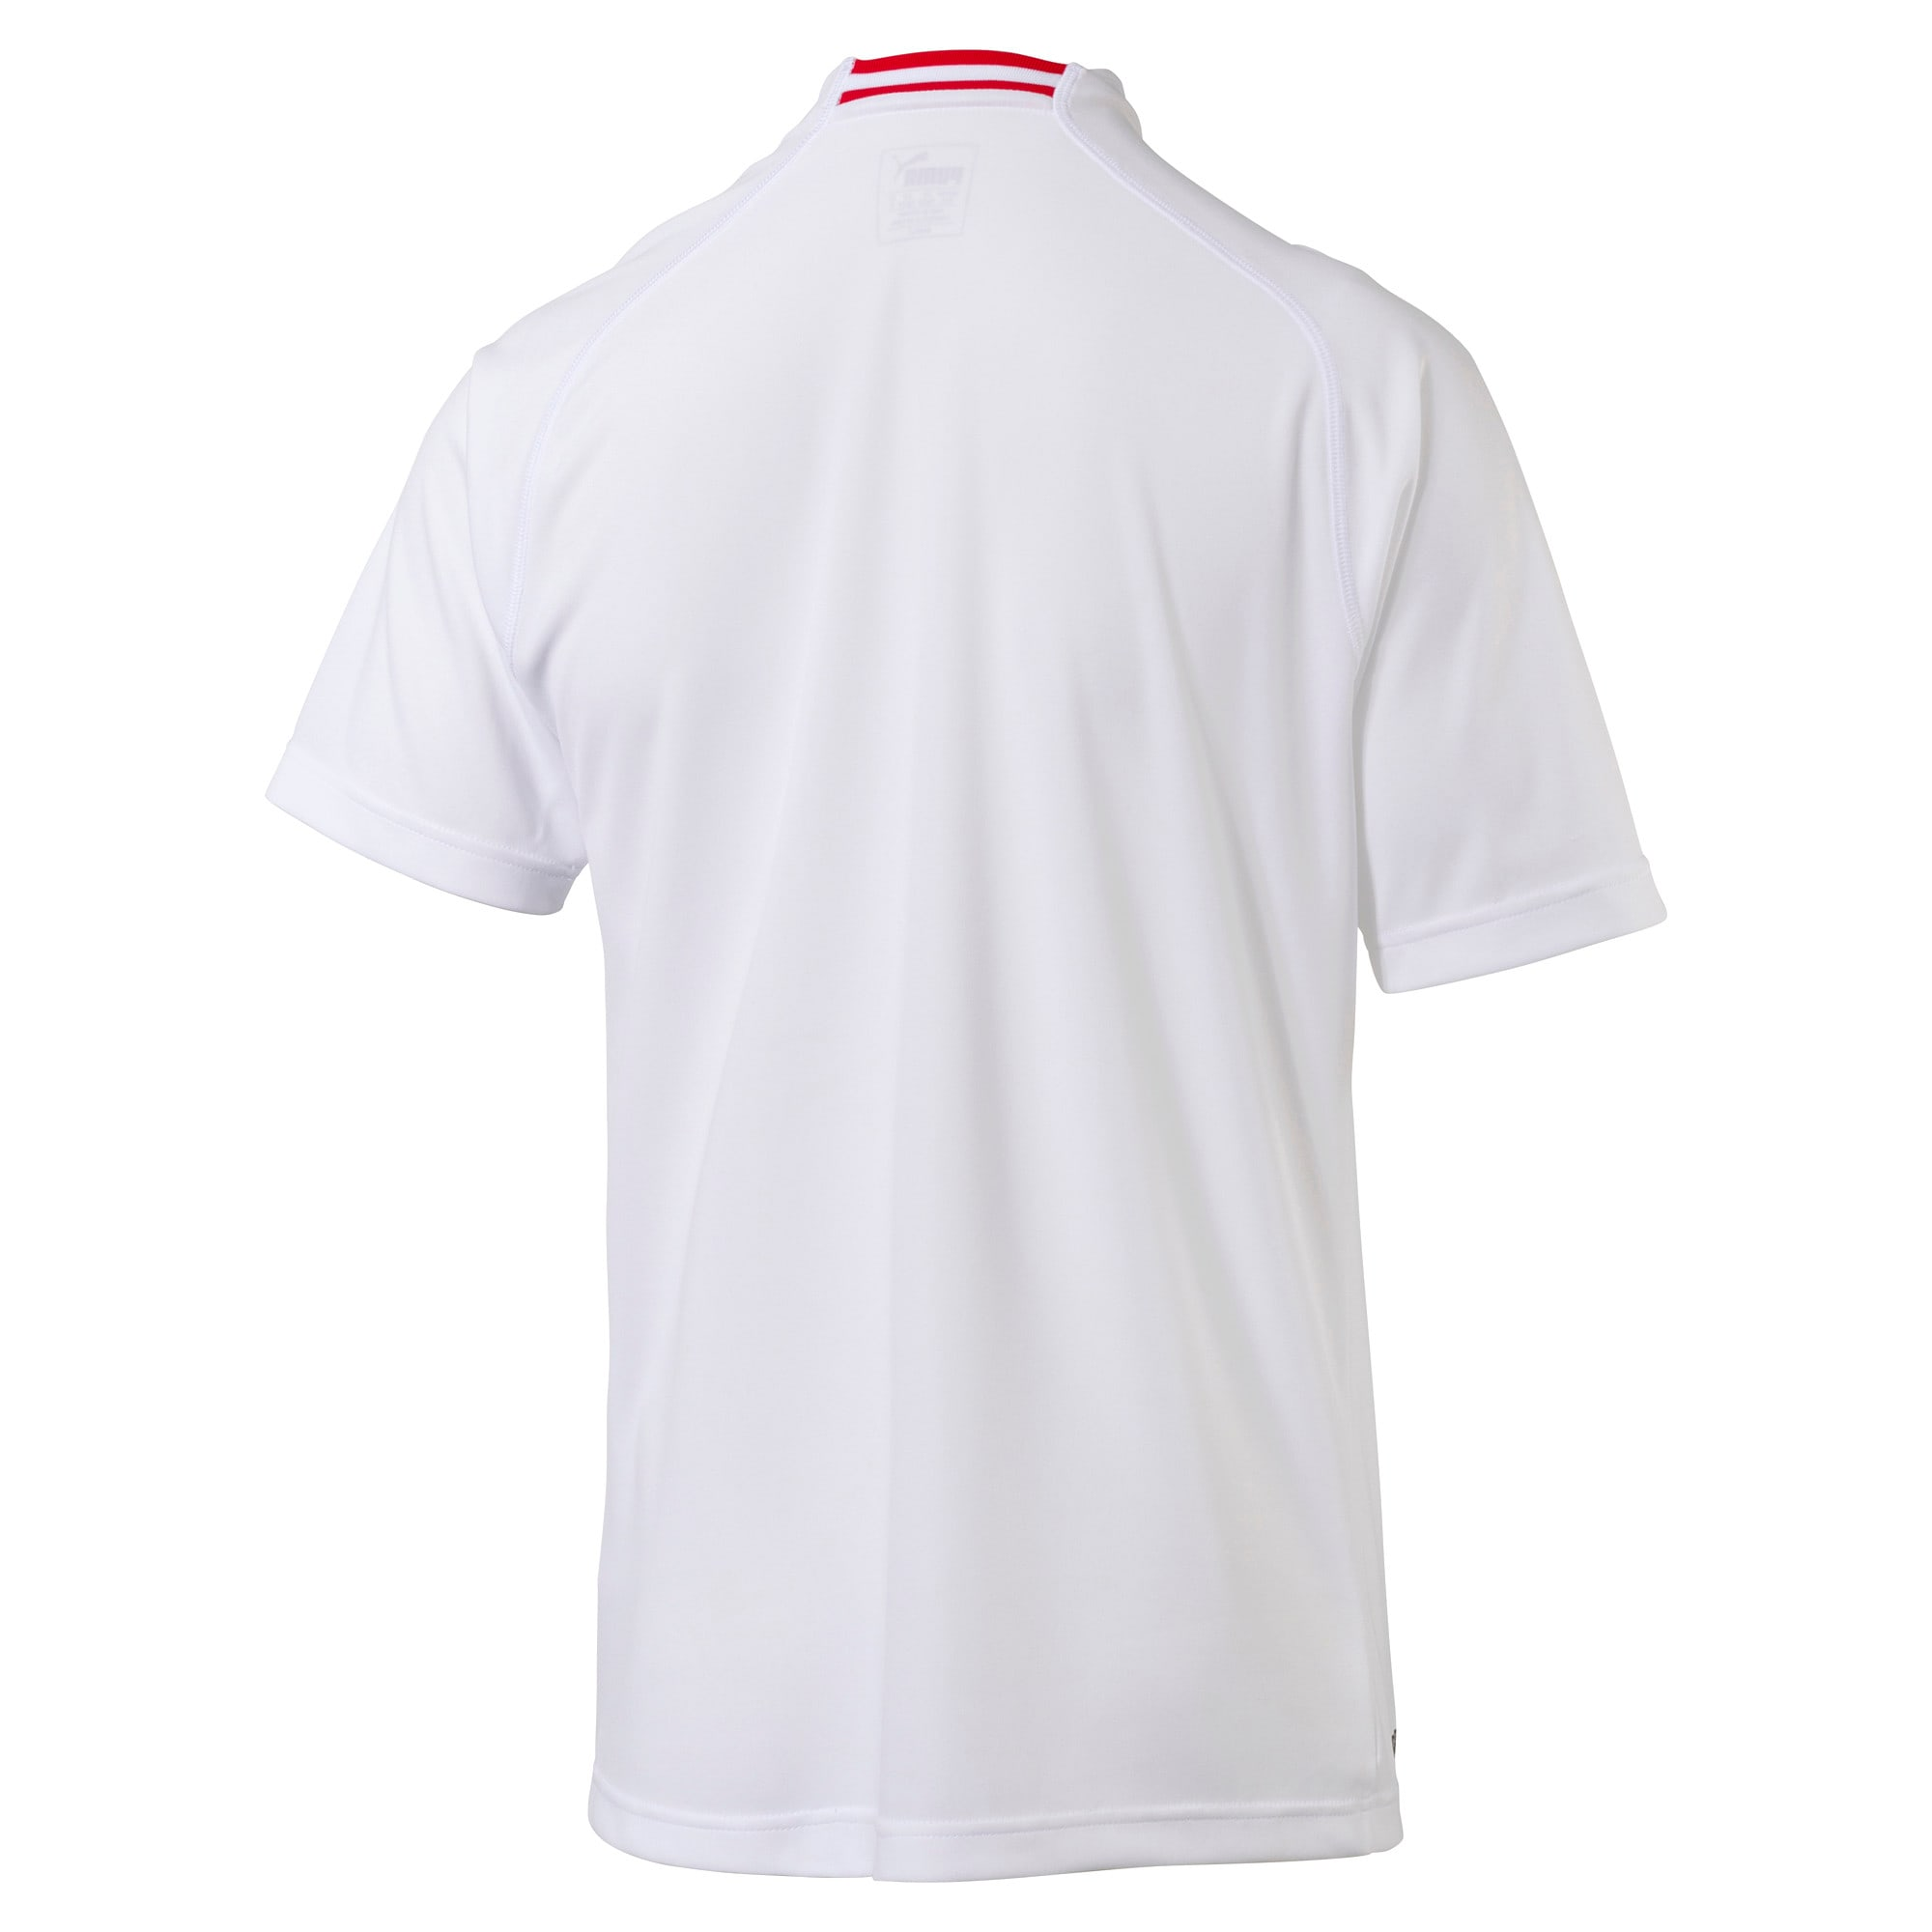 Thumbnail 3 of Austria Away Replica Shirt, Puma White, medium